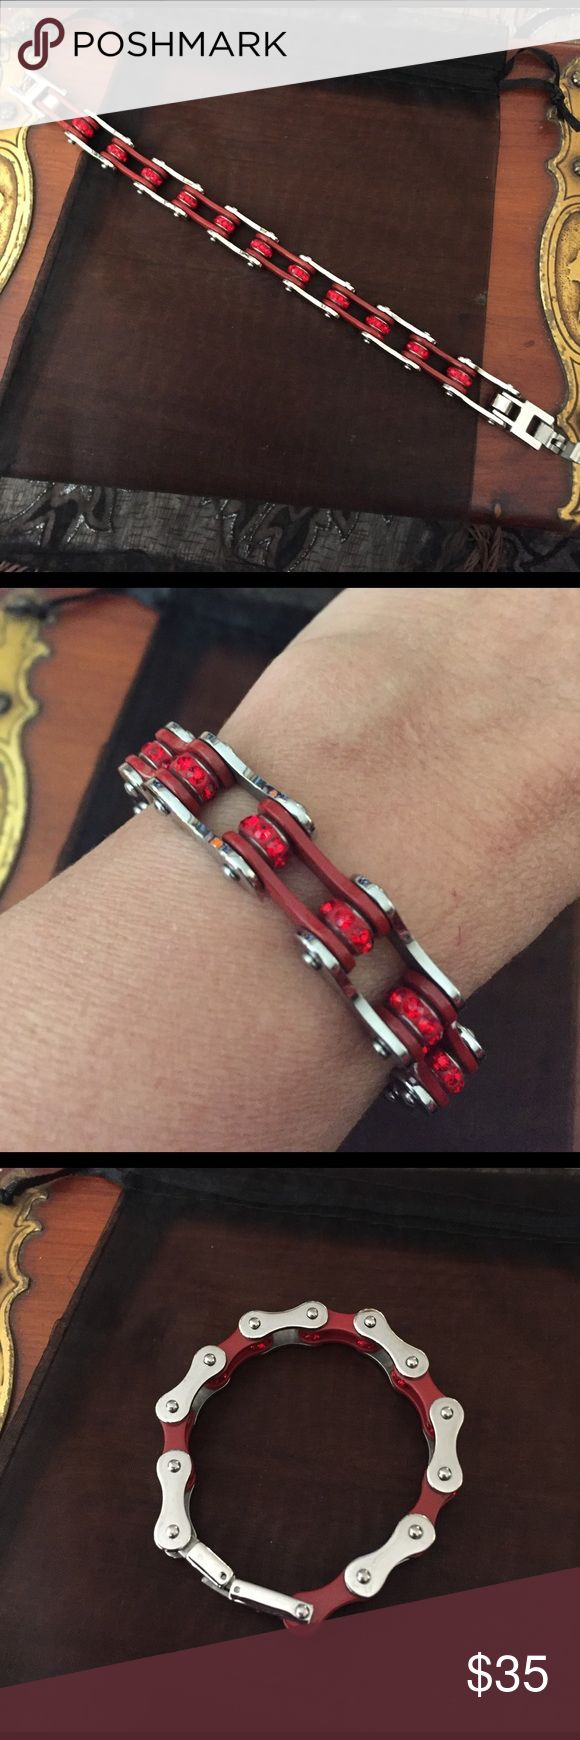 Harley Davidson Chain Link Bracelet Silver toned with red enamel with red crystals. This was purchased at a Harley store in Wisconsin but I've seen them for sale in other places. This bracelet has not been worn. Length is 7.5 inches. Harley-Davidson Jewelry Bracelets